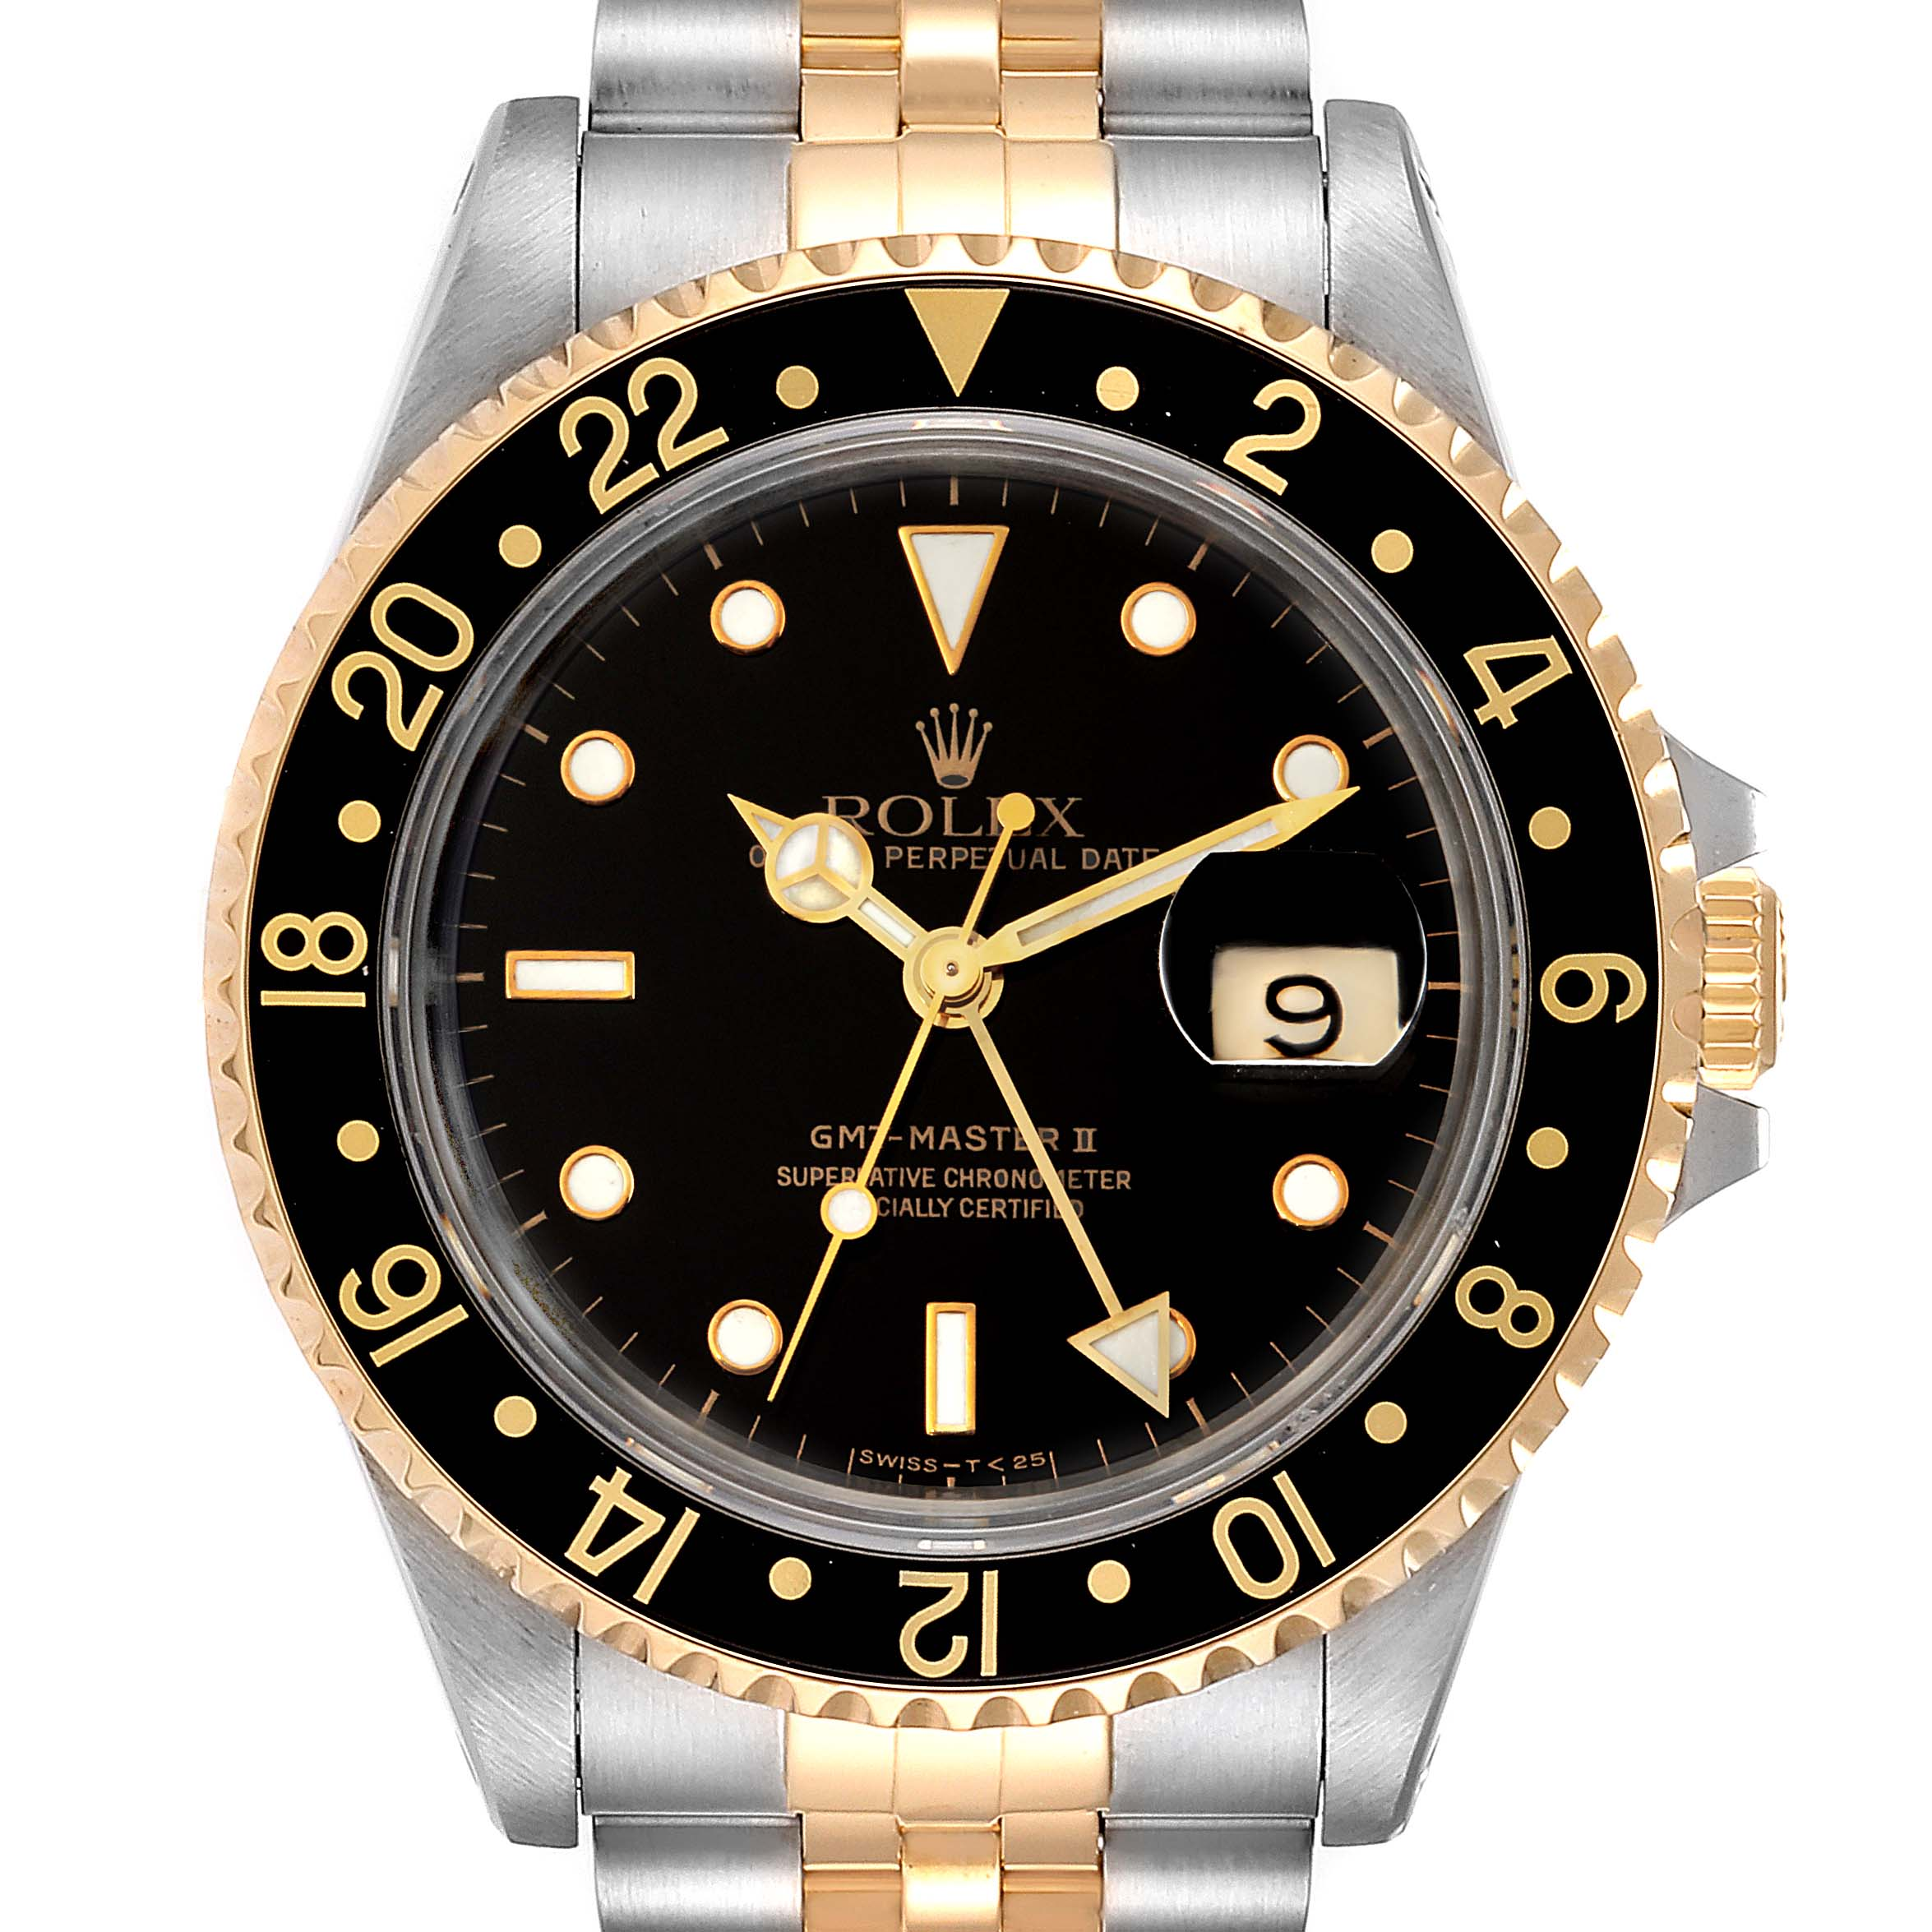 Photo of Rolex GMT Master II Yellow Gold Steel Jubilee Bracelet Mens Watch 16713